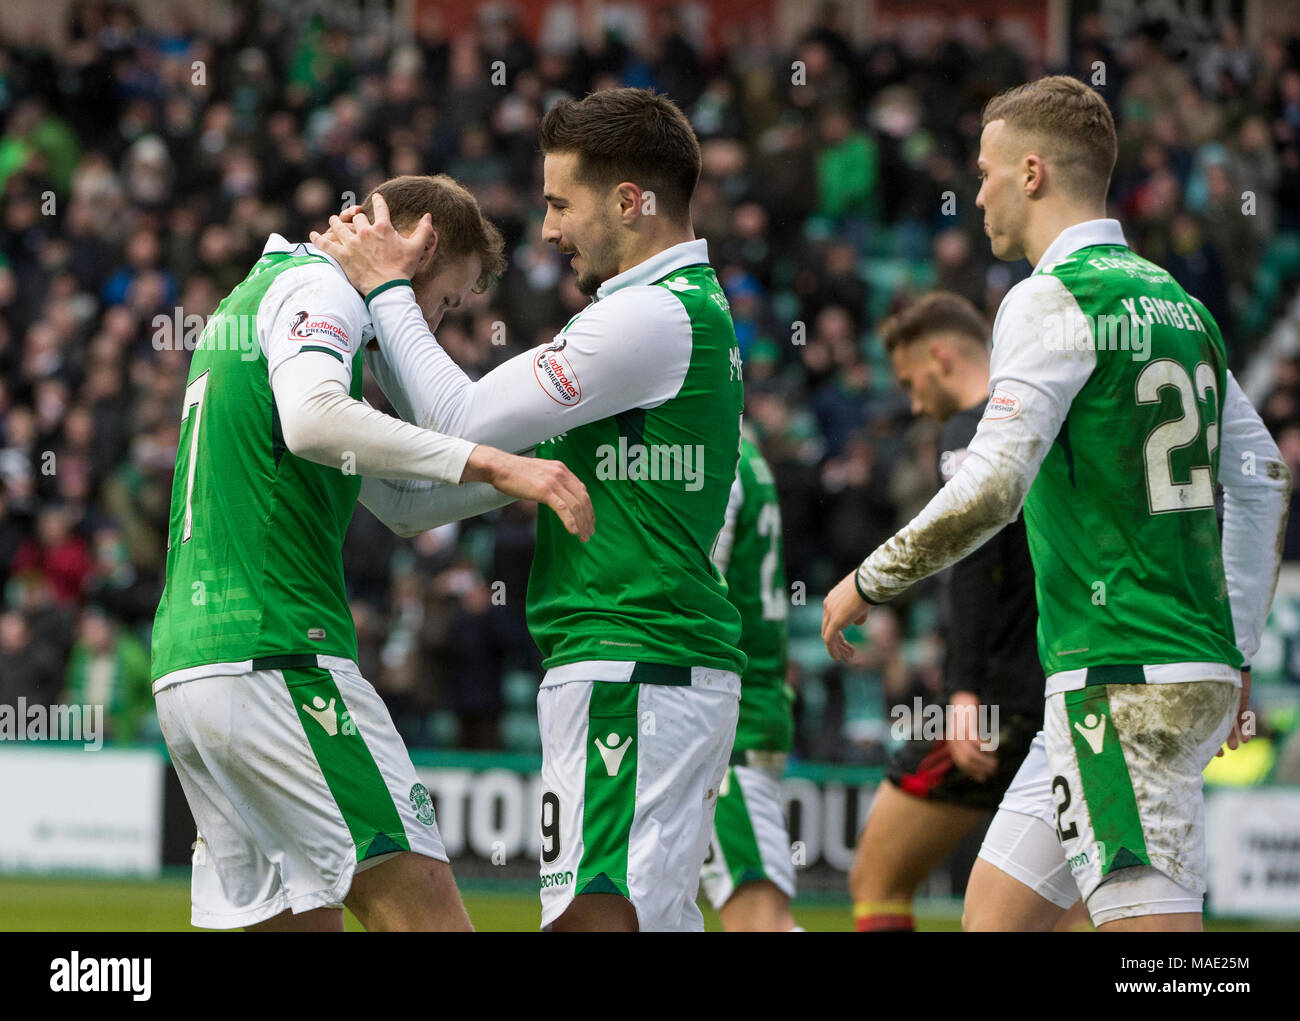 Edinburgh, UK, 31 Mar 2018.  Pic shows: Hibs celebrate after Jamie MacLaren scores the opening goal during the second half of the Scottish Premiereship clash between Hibernian and Partick Thistle at Easter Road Stadium, Edinburgh.  Credit: Alamy/Ian Jacobs - Stock Image